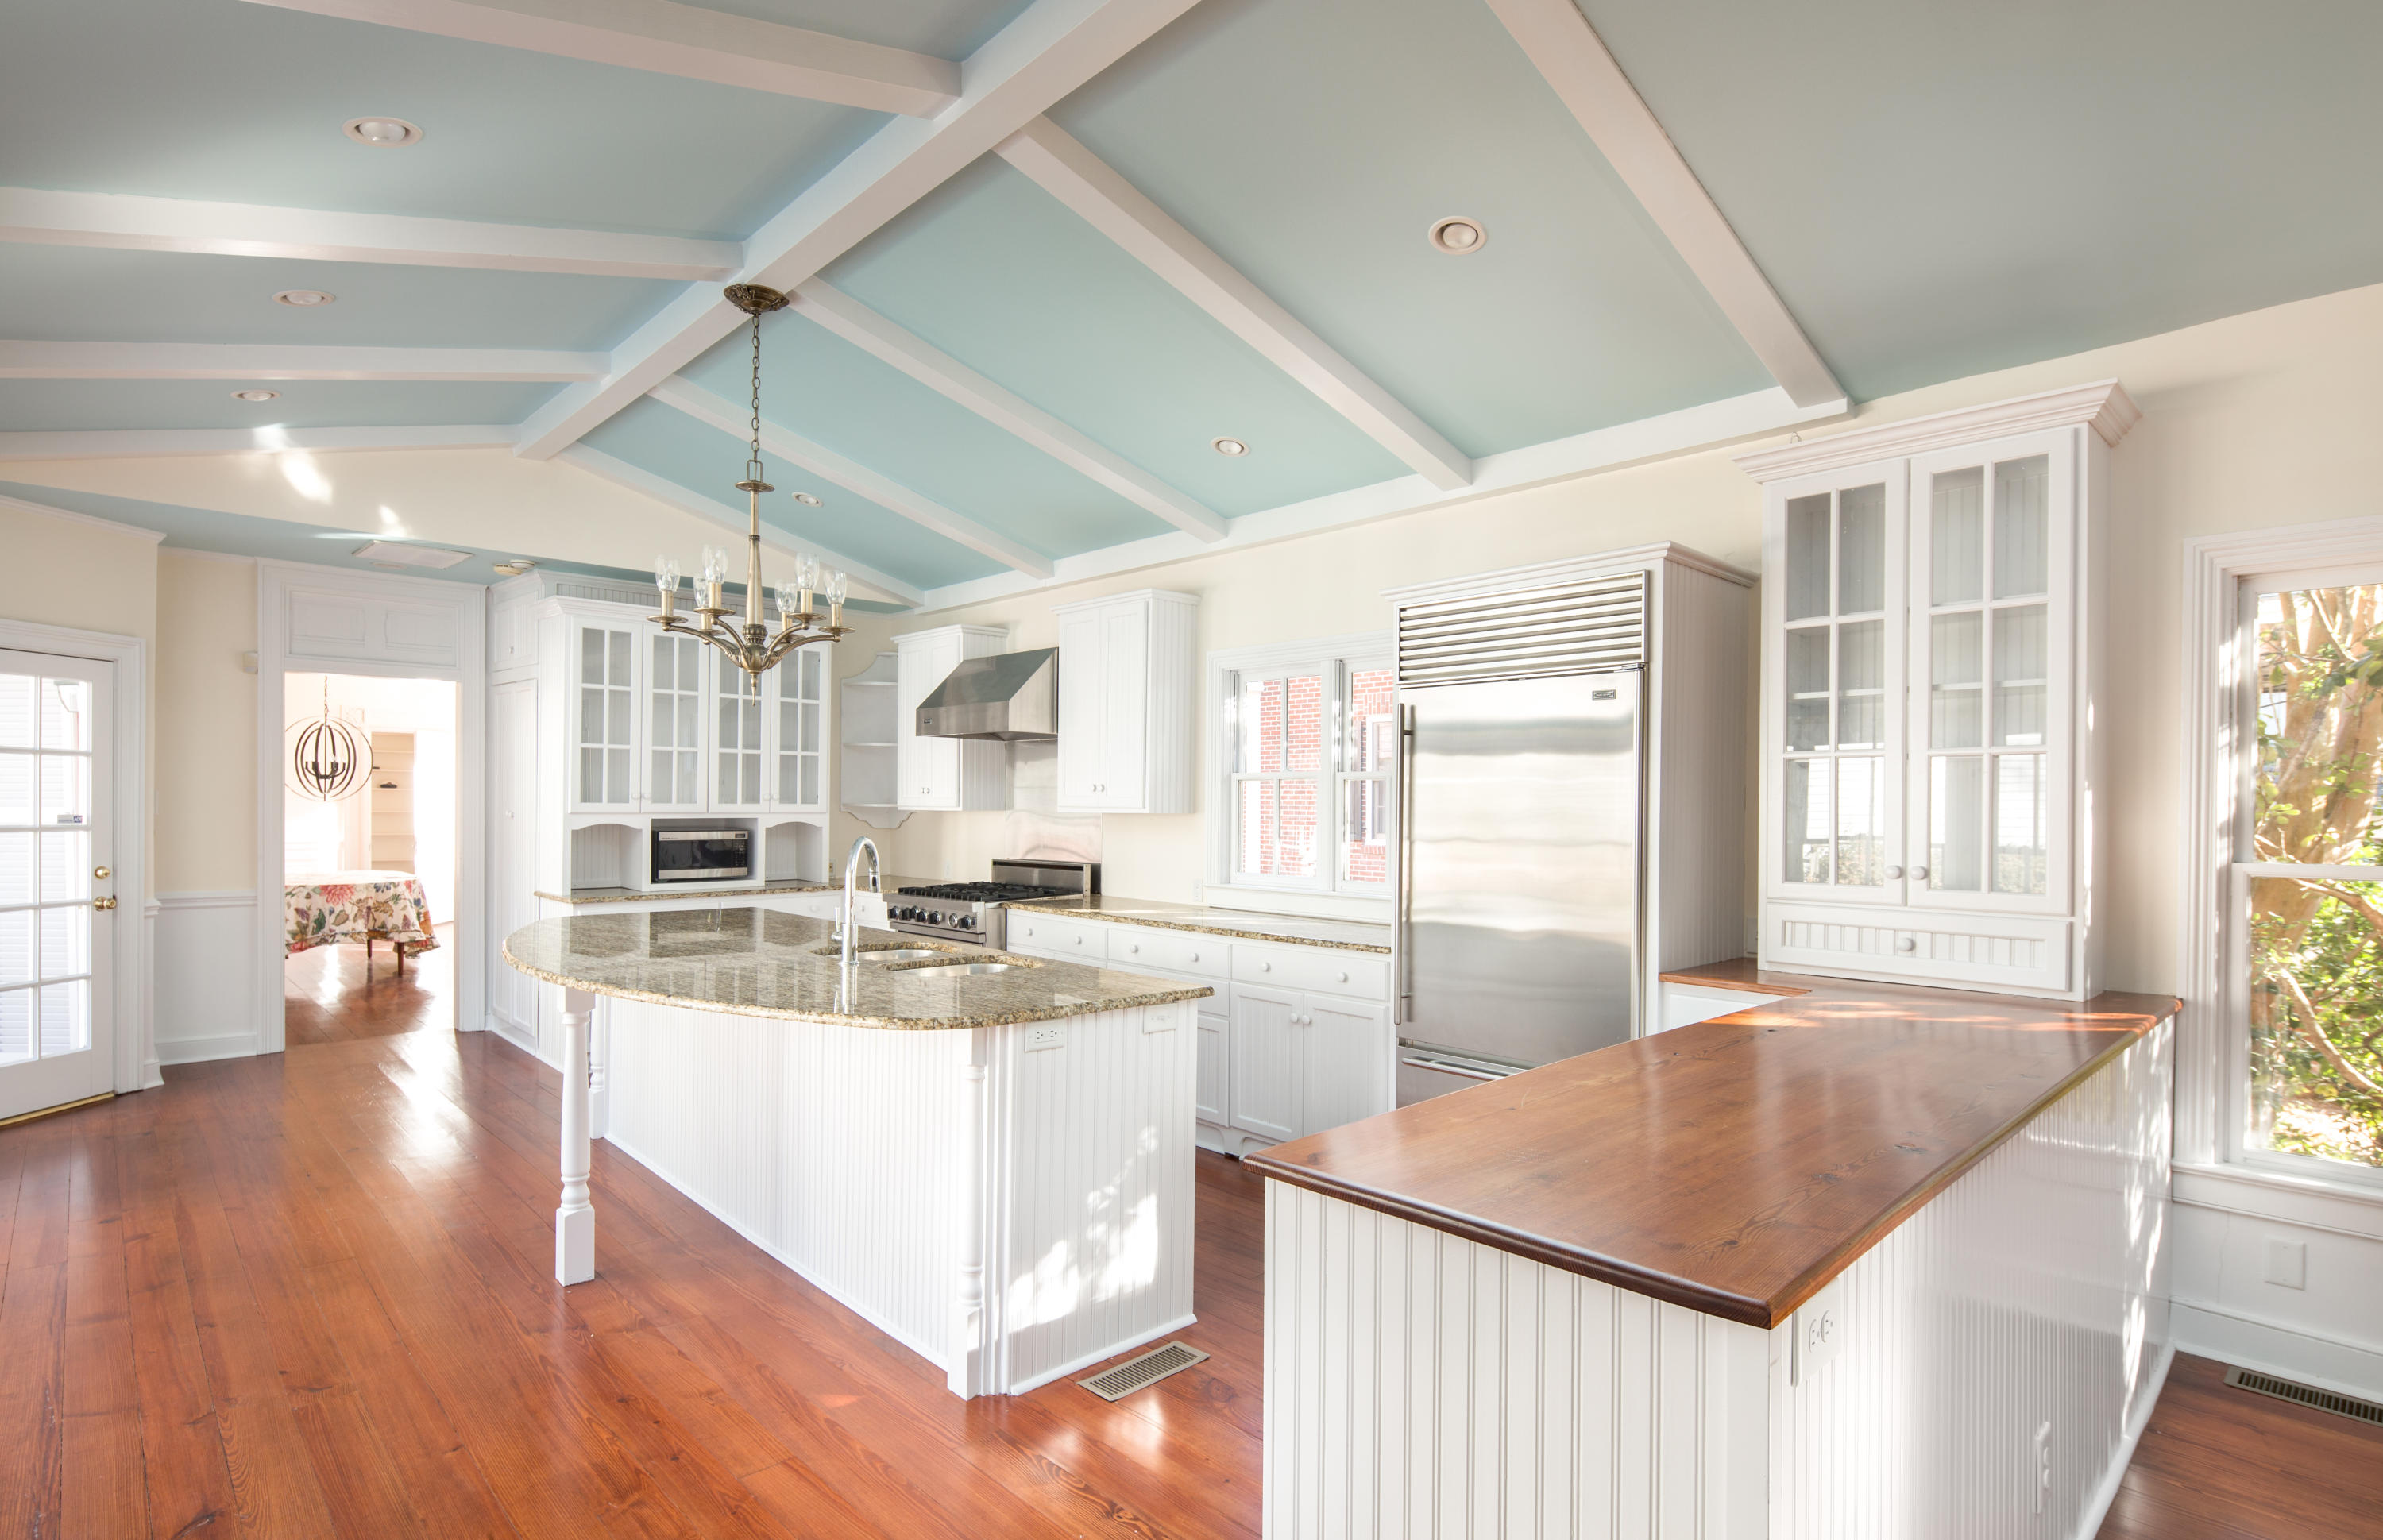 South of Broad Homes For Sale - 47 South Battery, Charleston, SC - 27